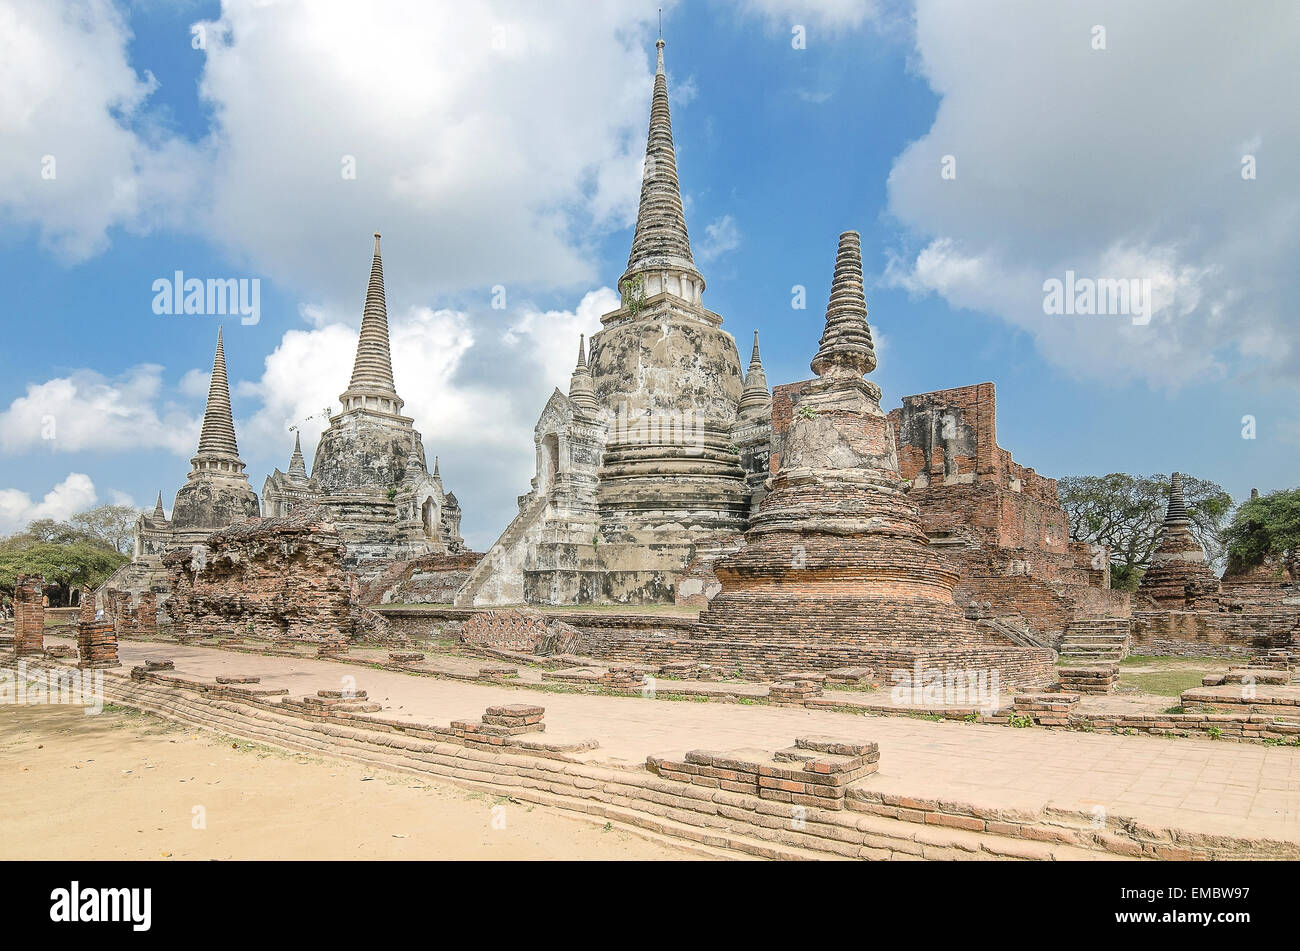 Old Temple Architecture , Wat Phra si sanphet at Ayutthaya, Thailand, World Heritage Site - Stock Image